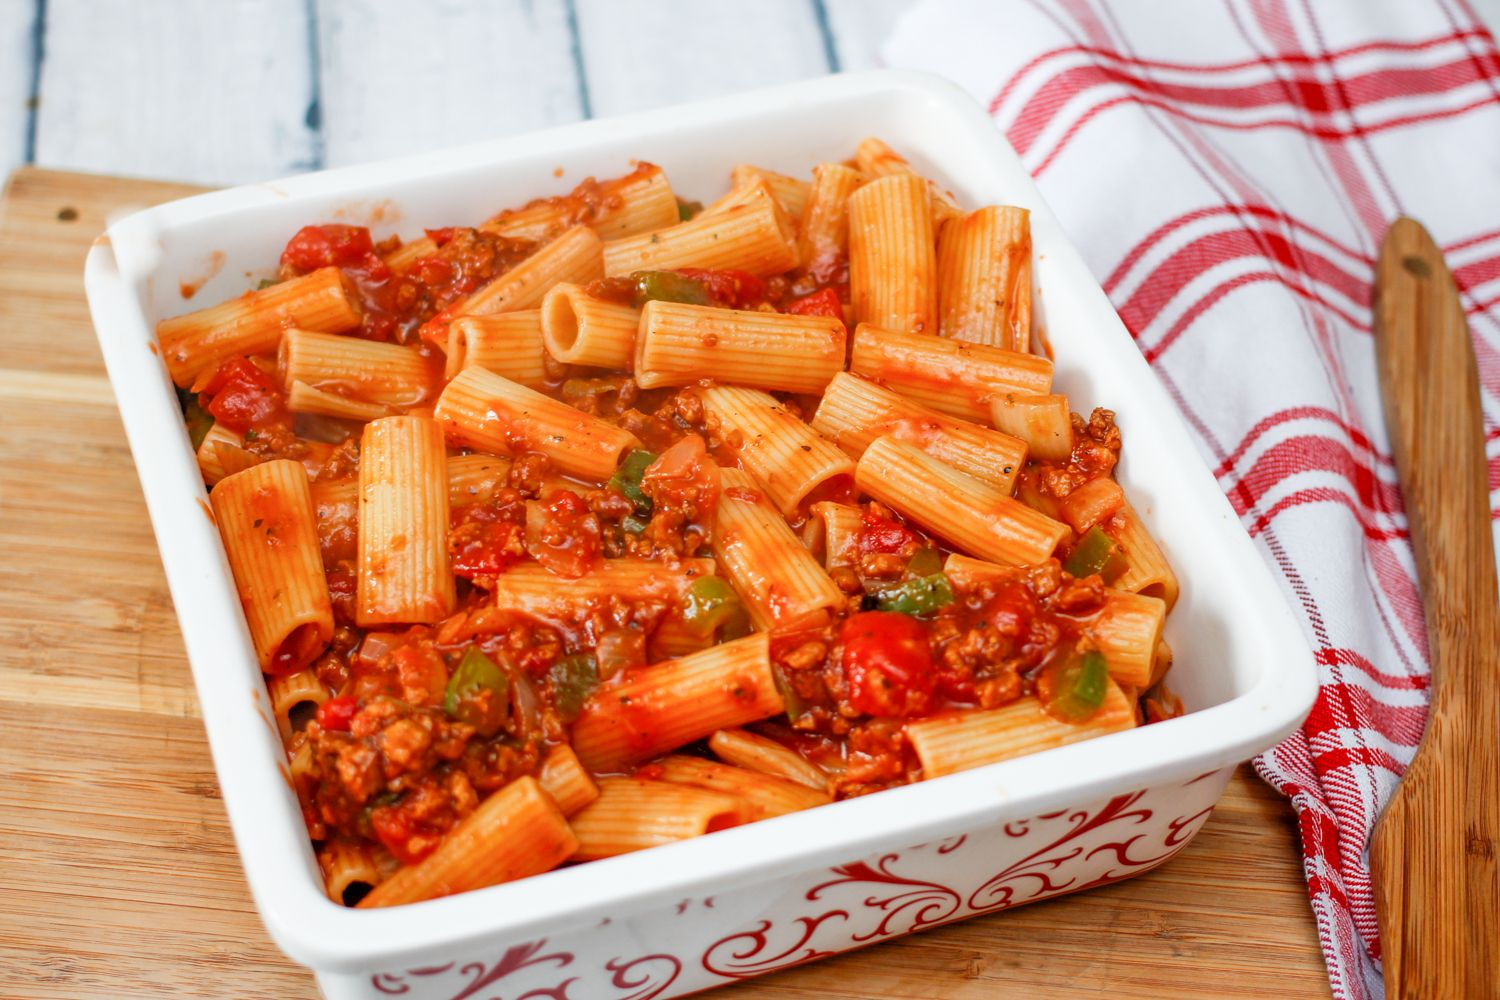 Fullsize Of Baked Ziti With Chicken